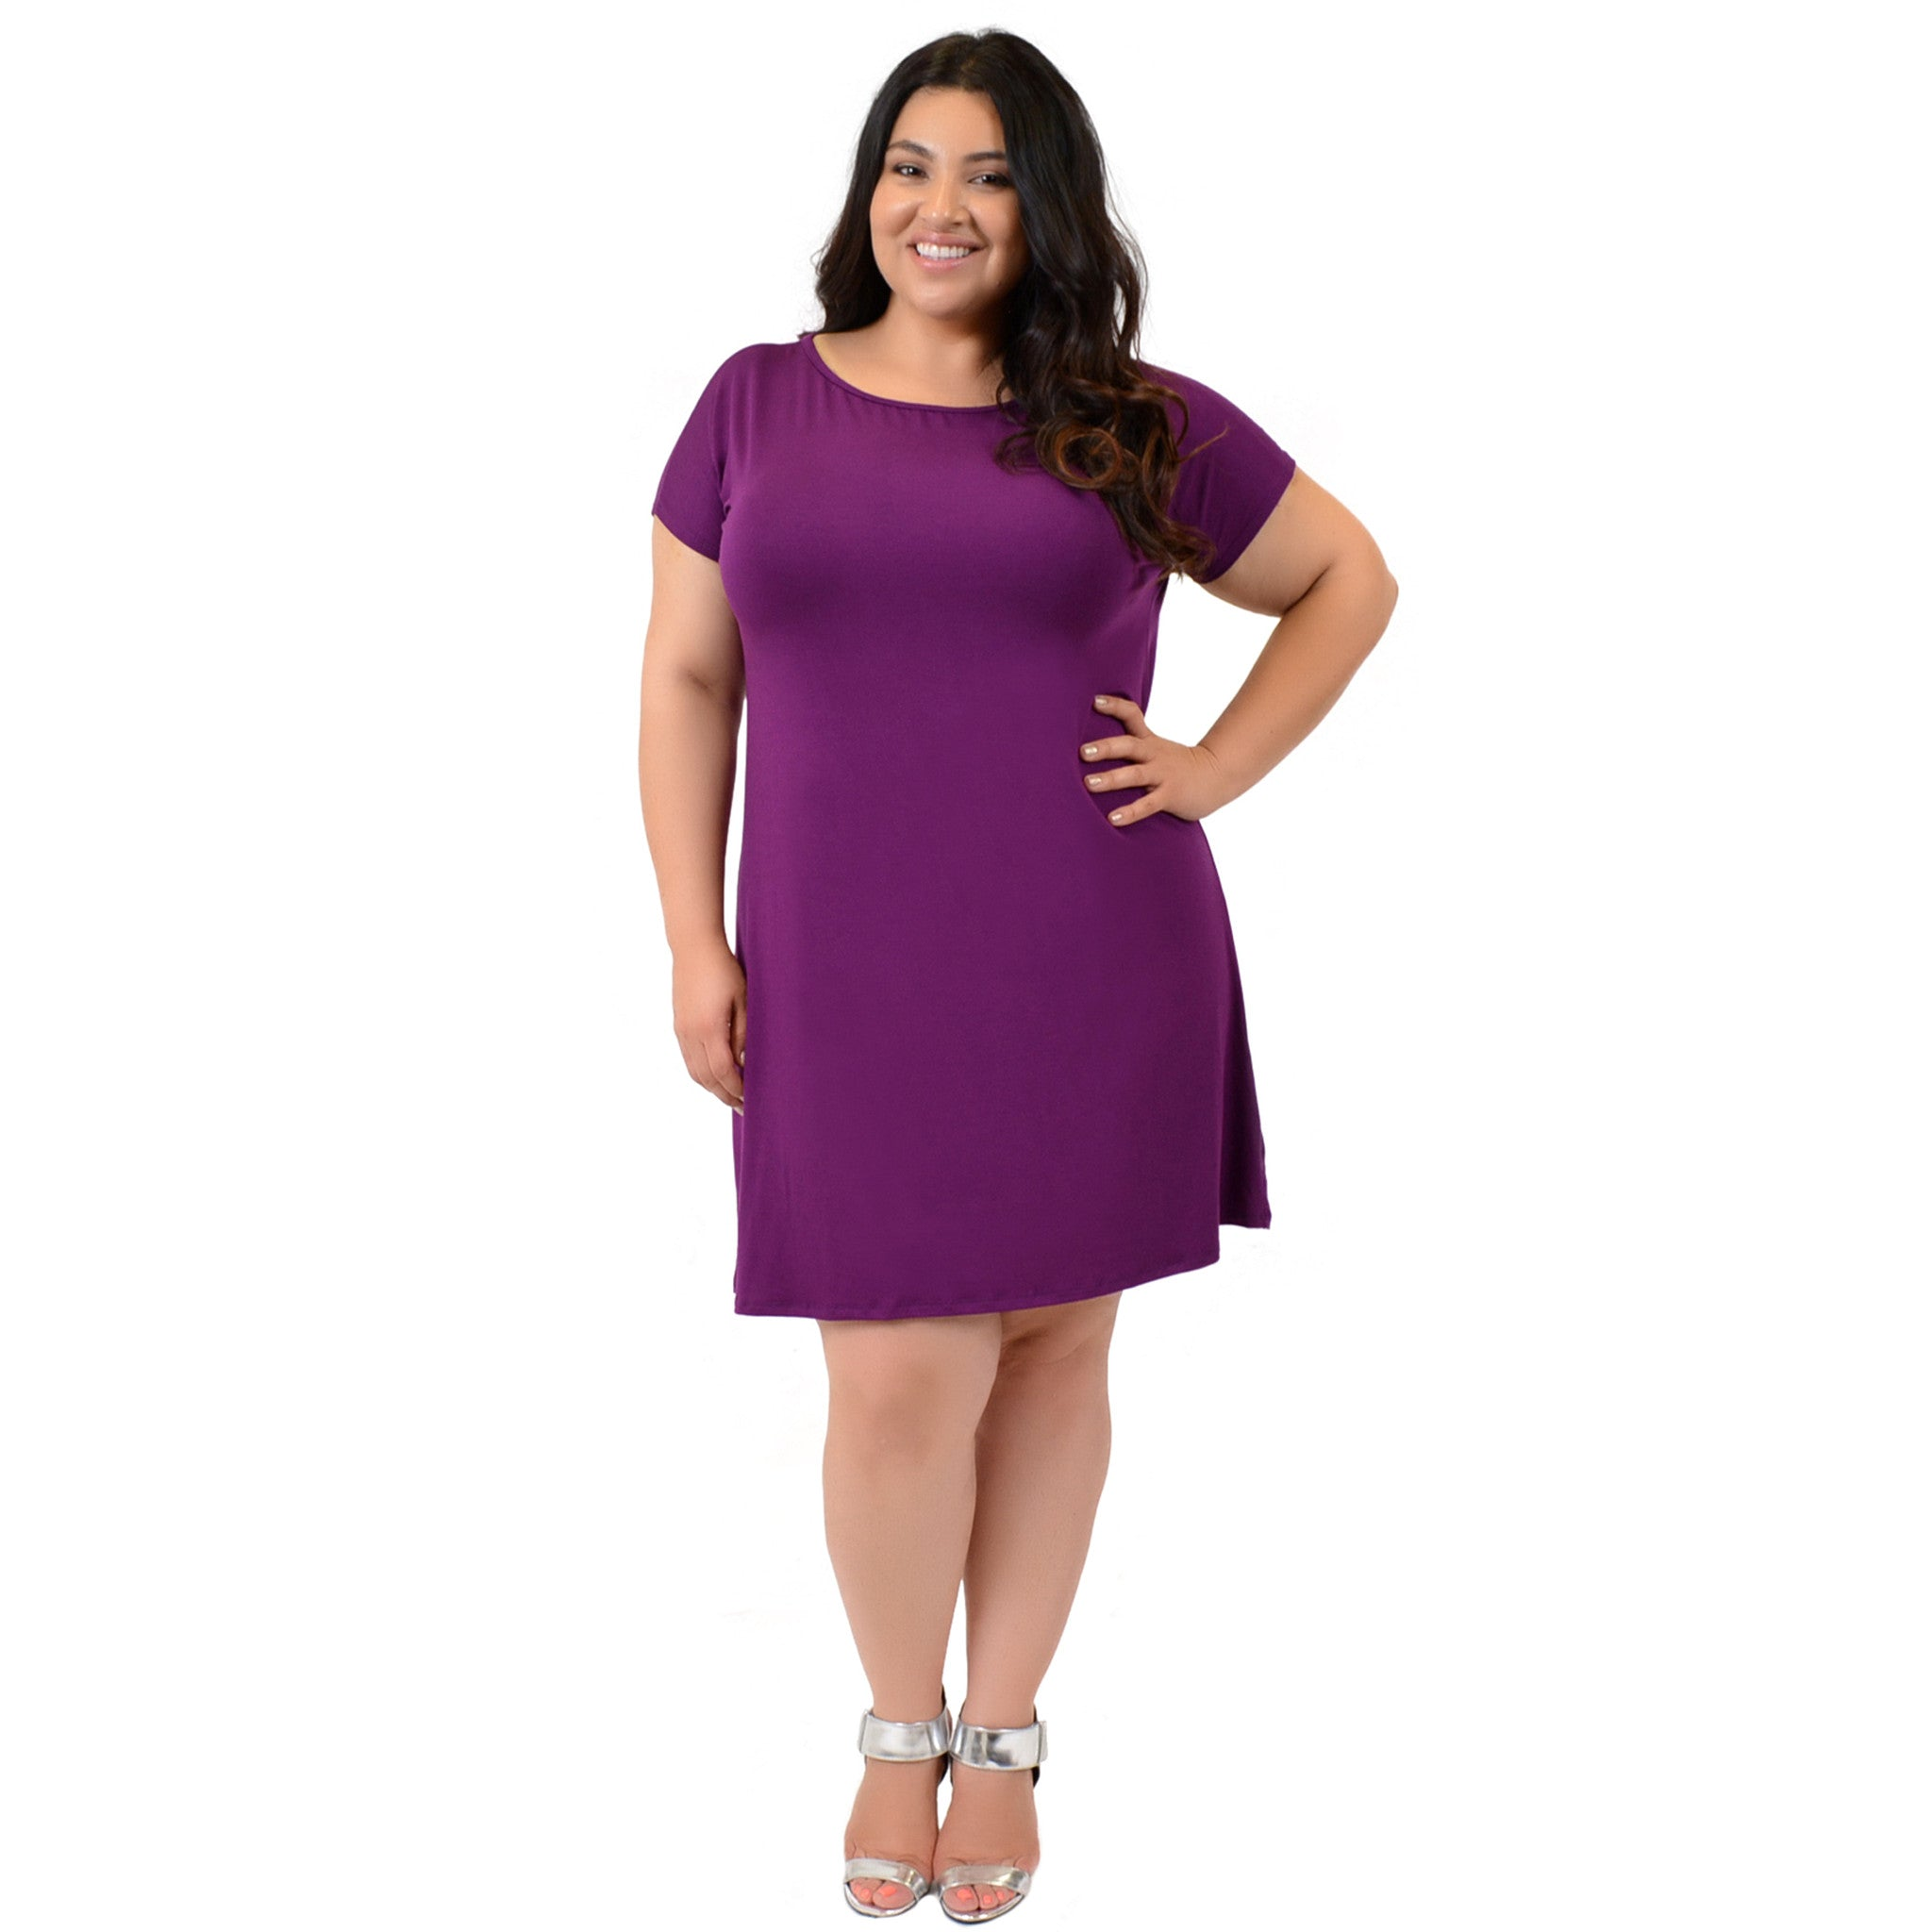 8fdb8925bd40ca Stretch is Comfort Women's Plus Size Short Sleeve Boatneck Shift Dress –  Stretch Is Comfort